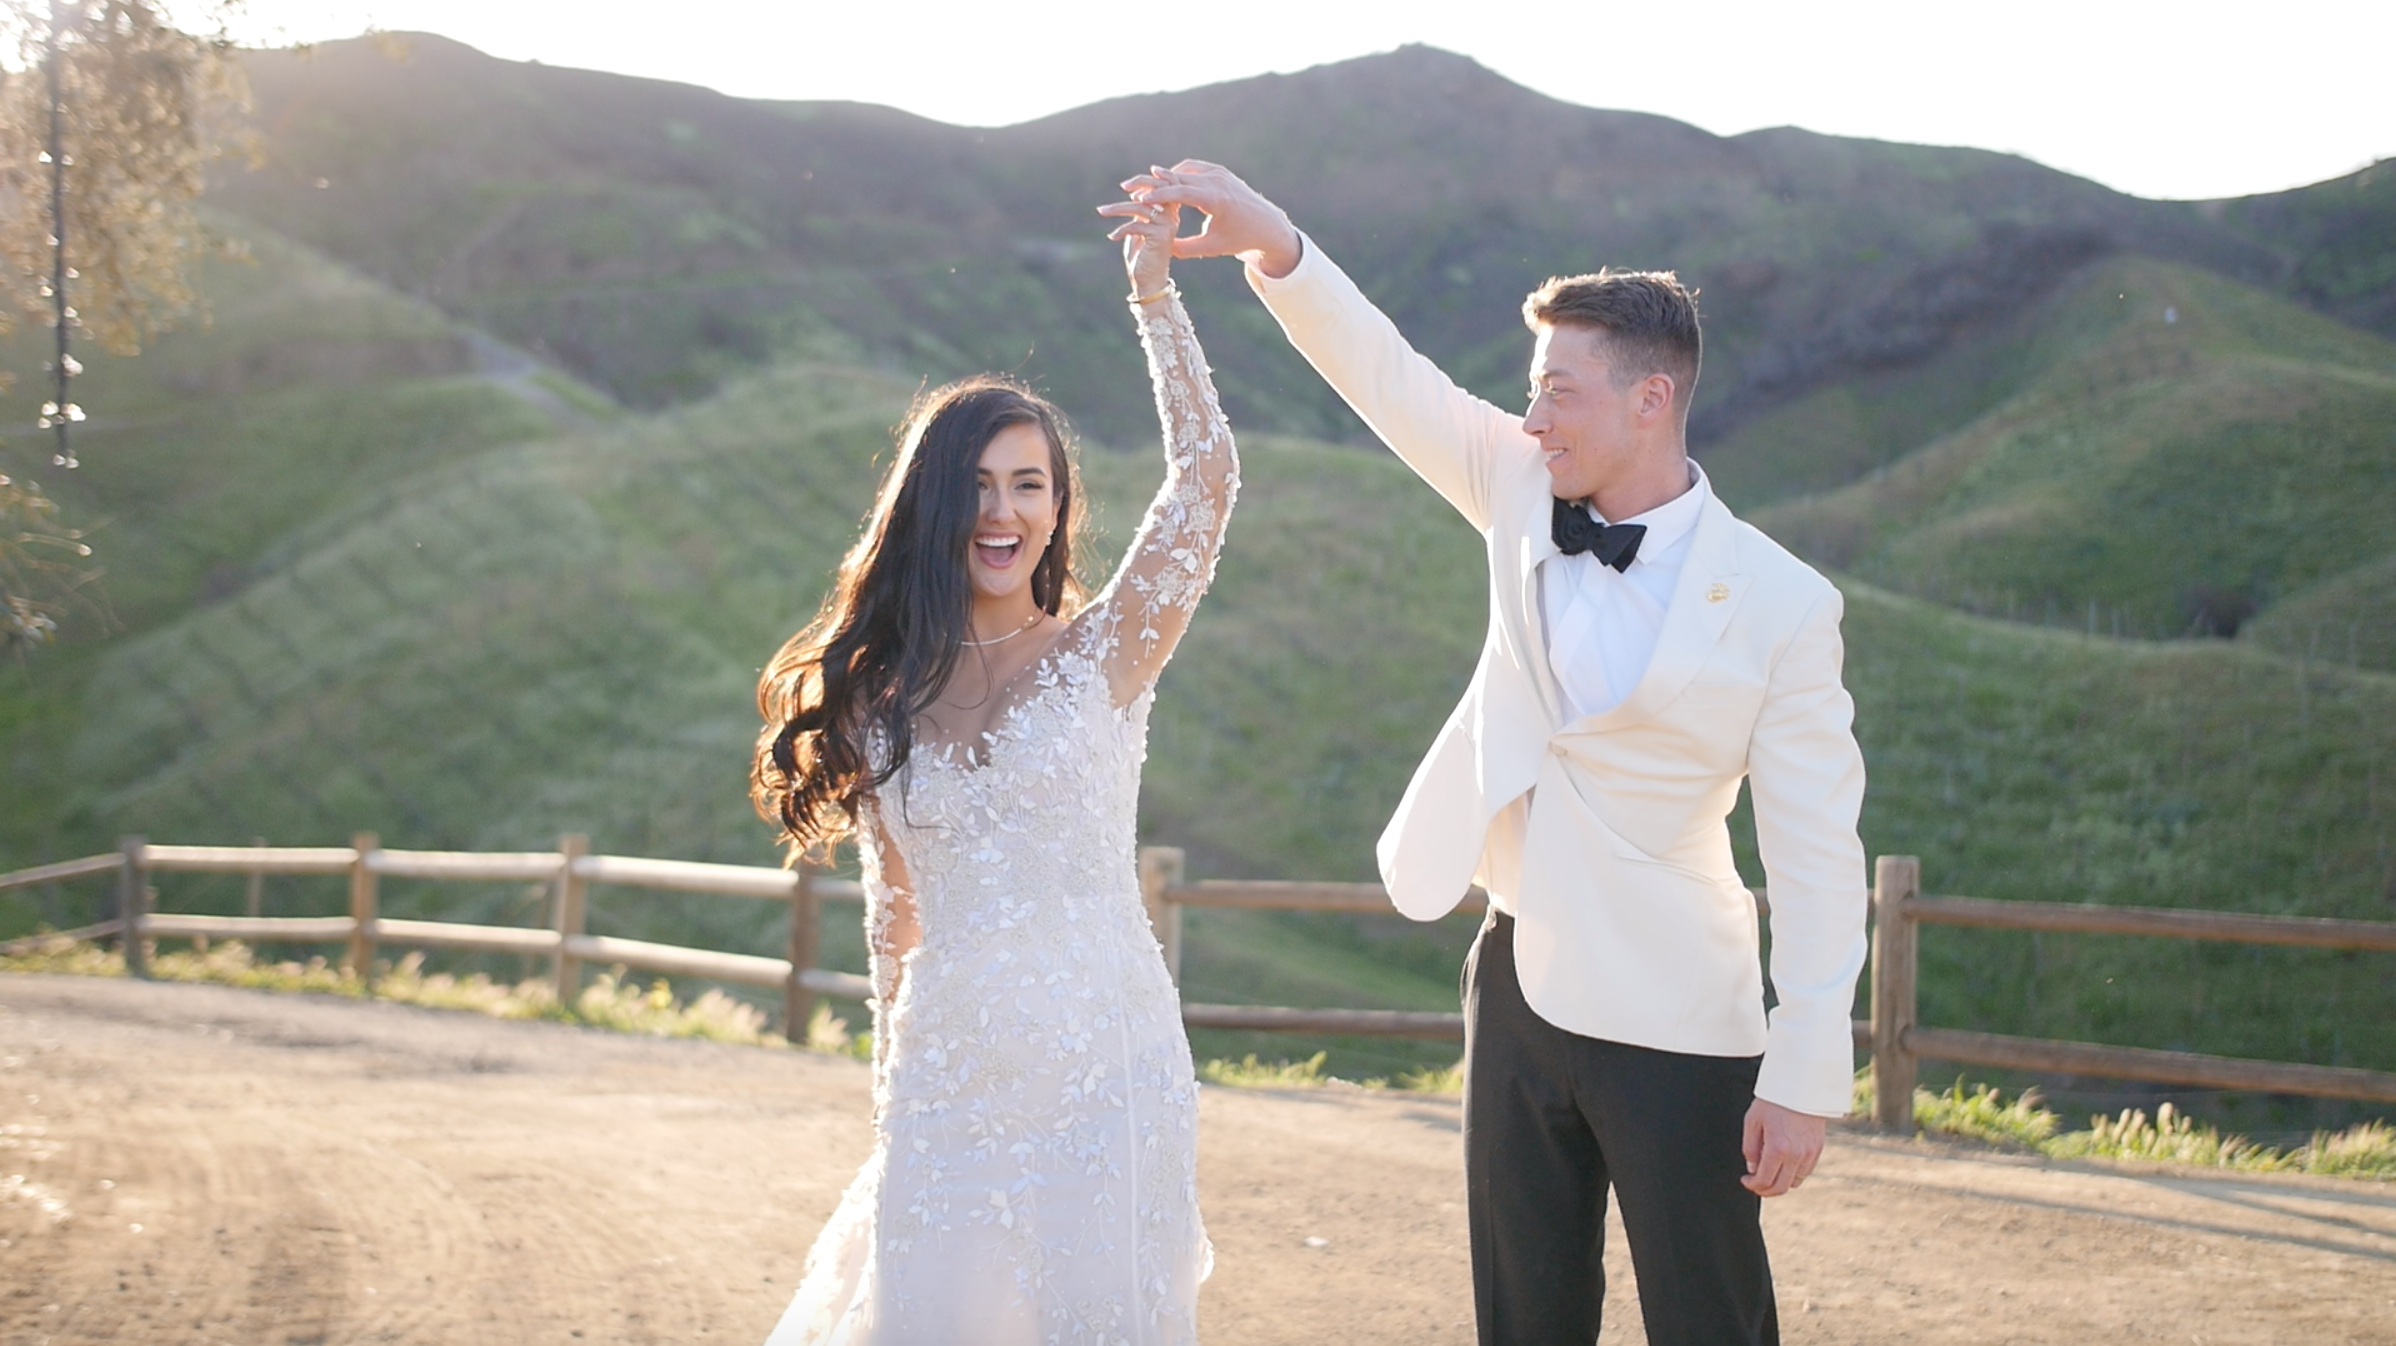 Amelia  + Levi | Malibu, California | Saddlerock Ranch